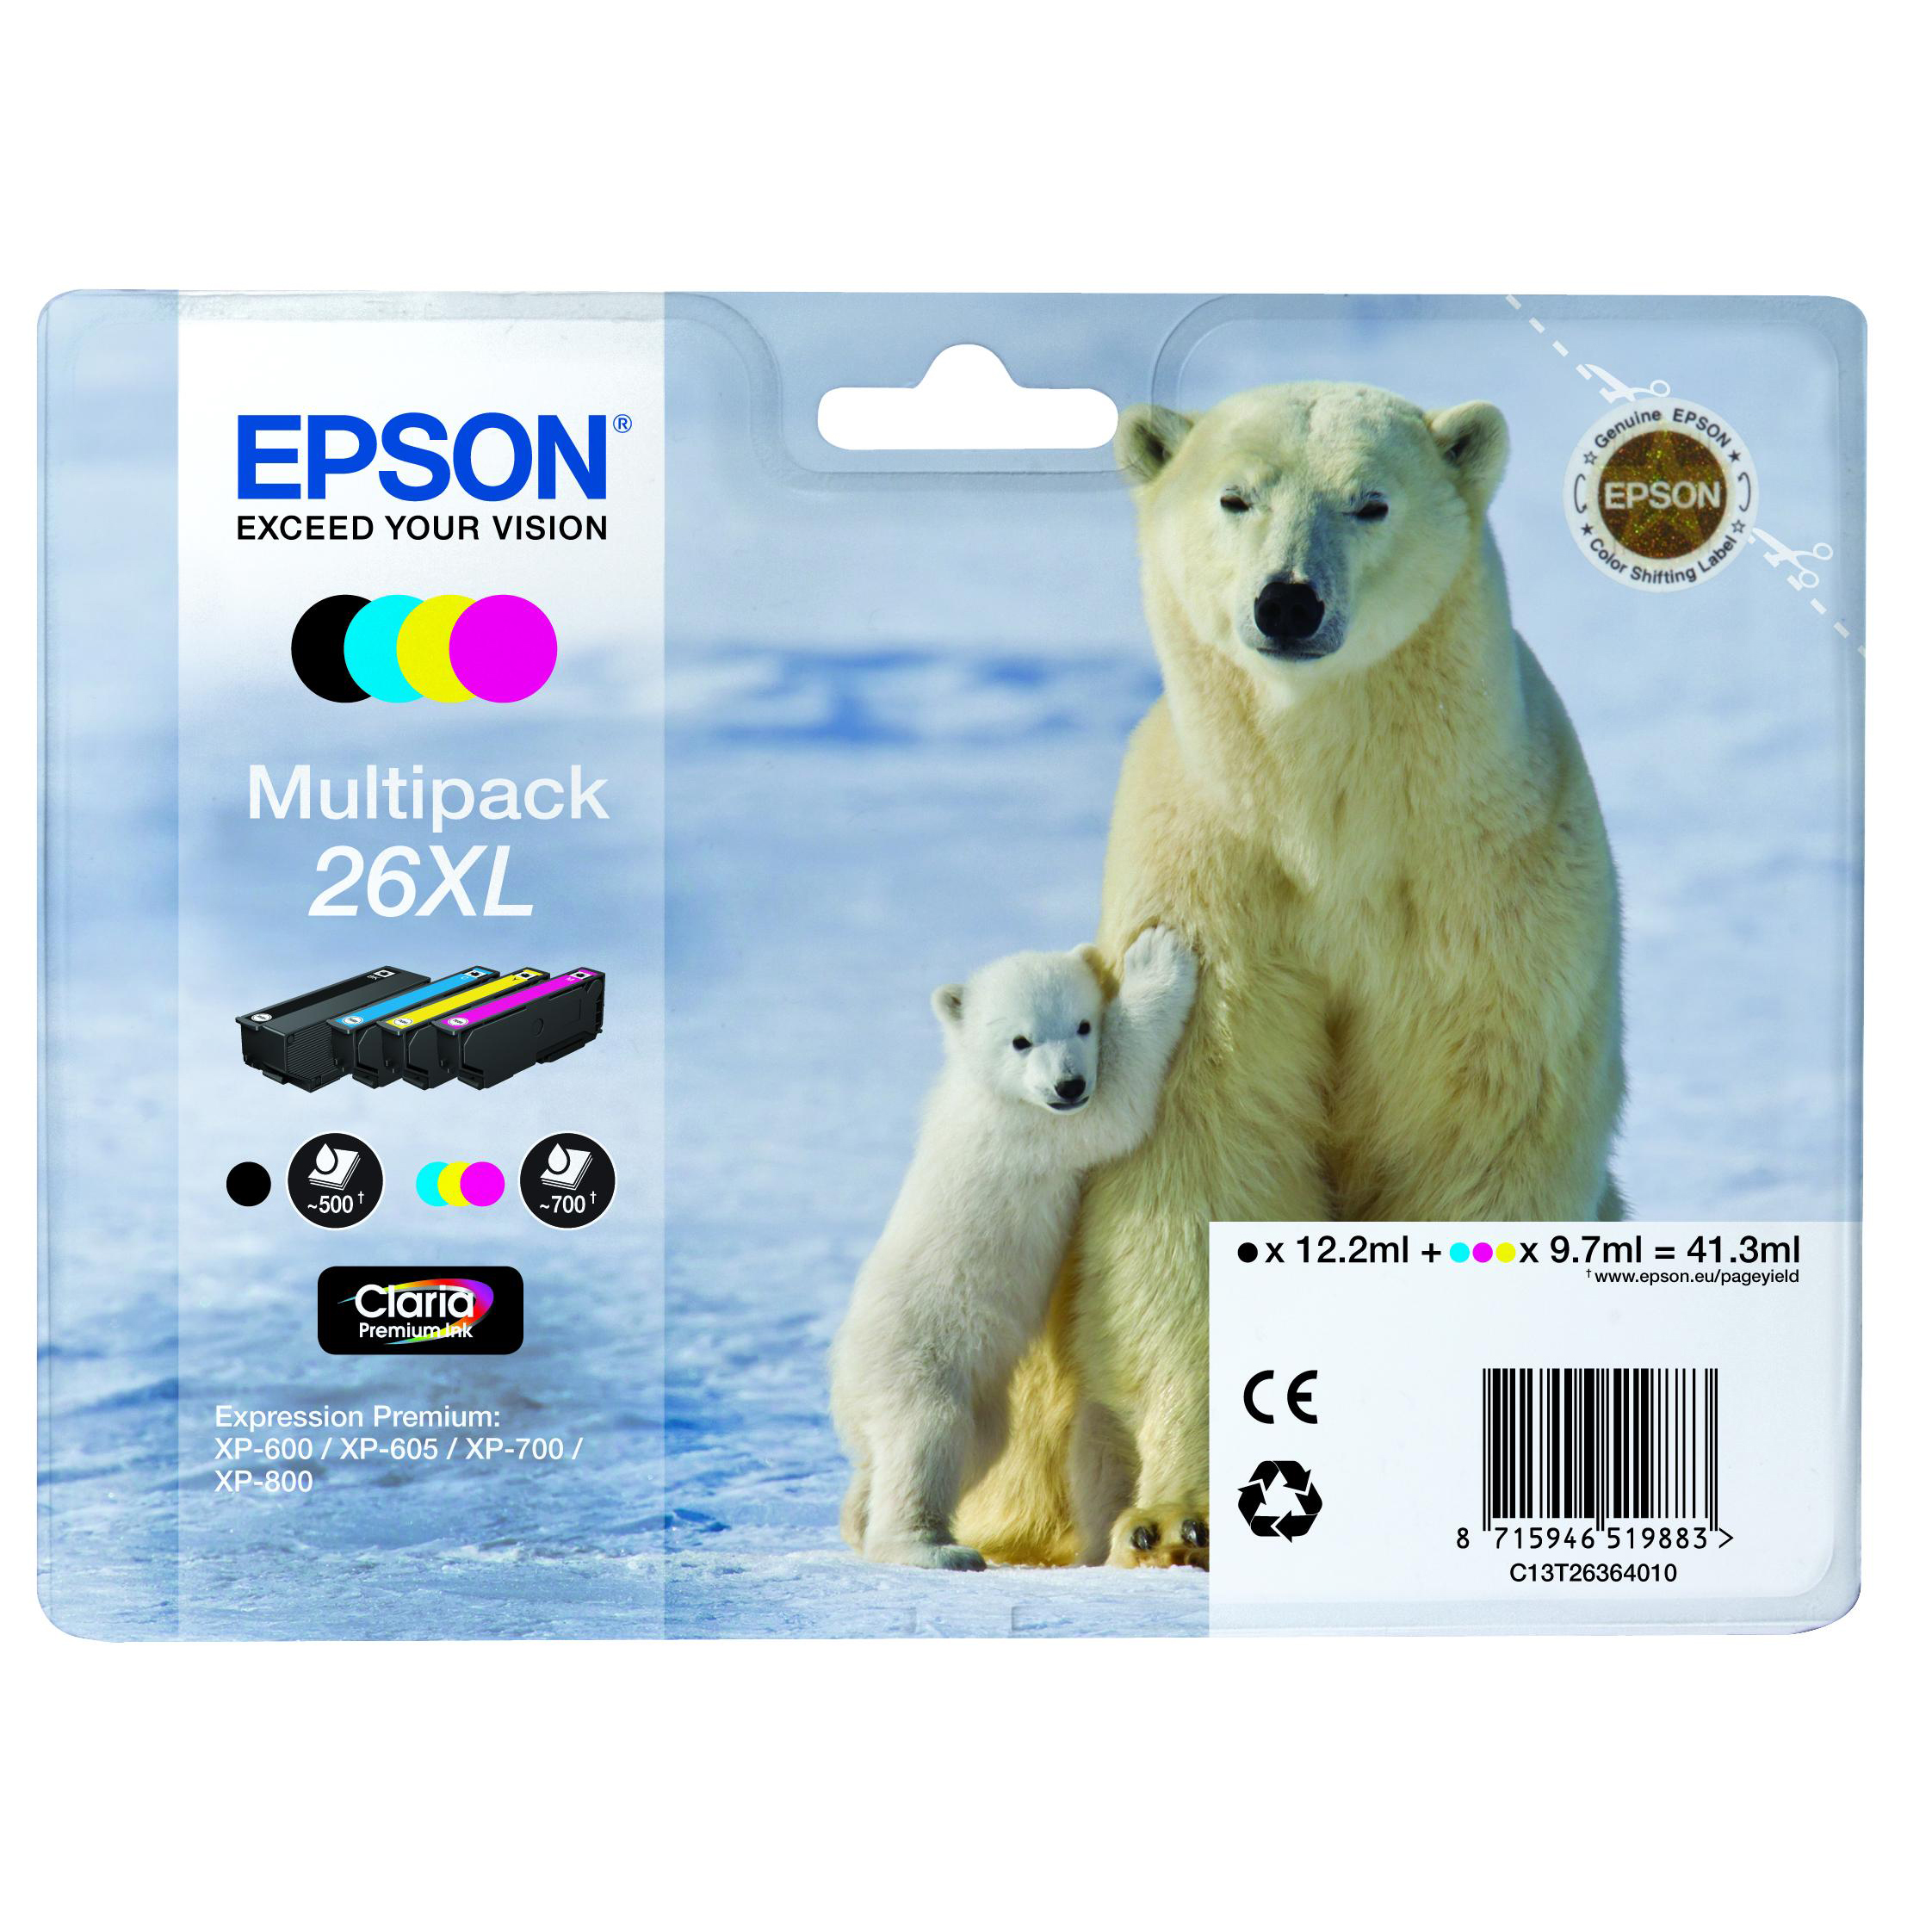 Epson 26XL Inkjet Cartridge Polar Bear HY Black/Cyan/Magenta/Yellow 41.3ml Ref C13T26364010 [Pack 4]